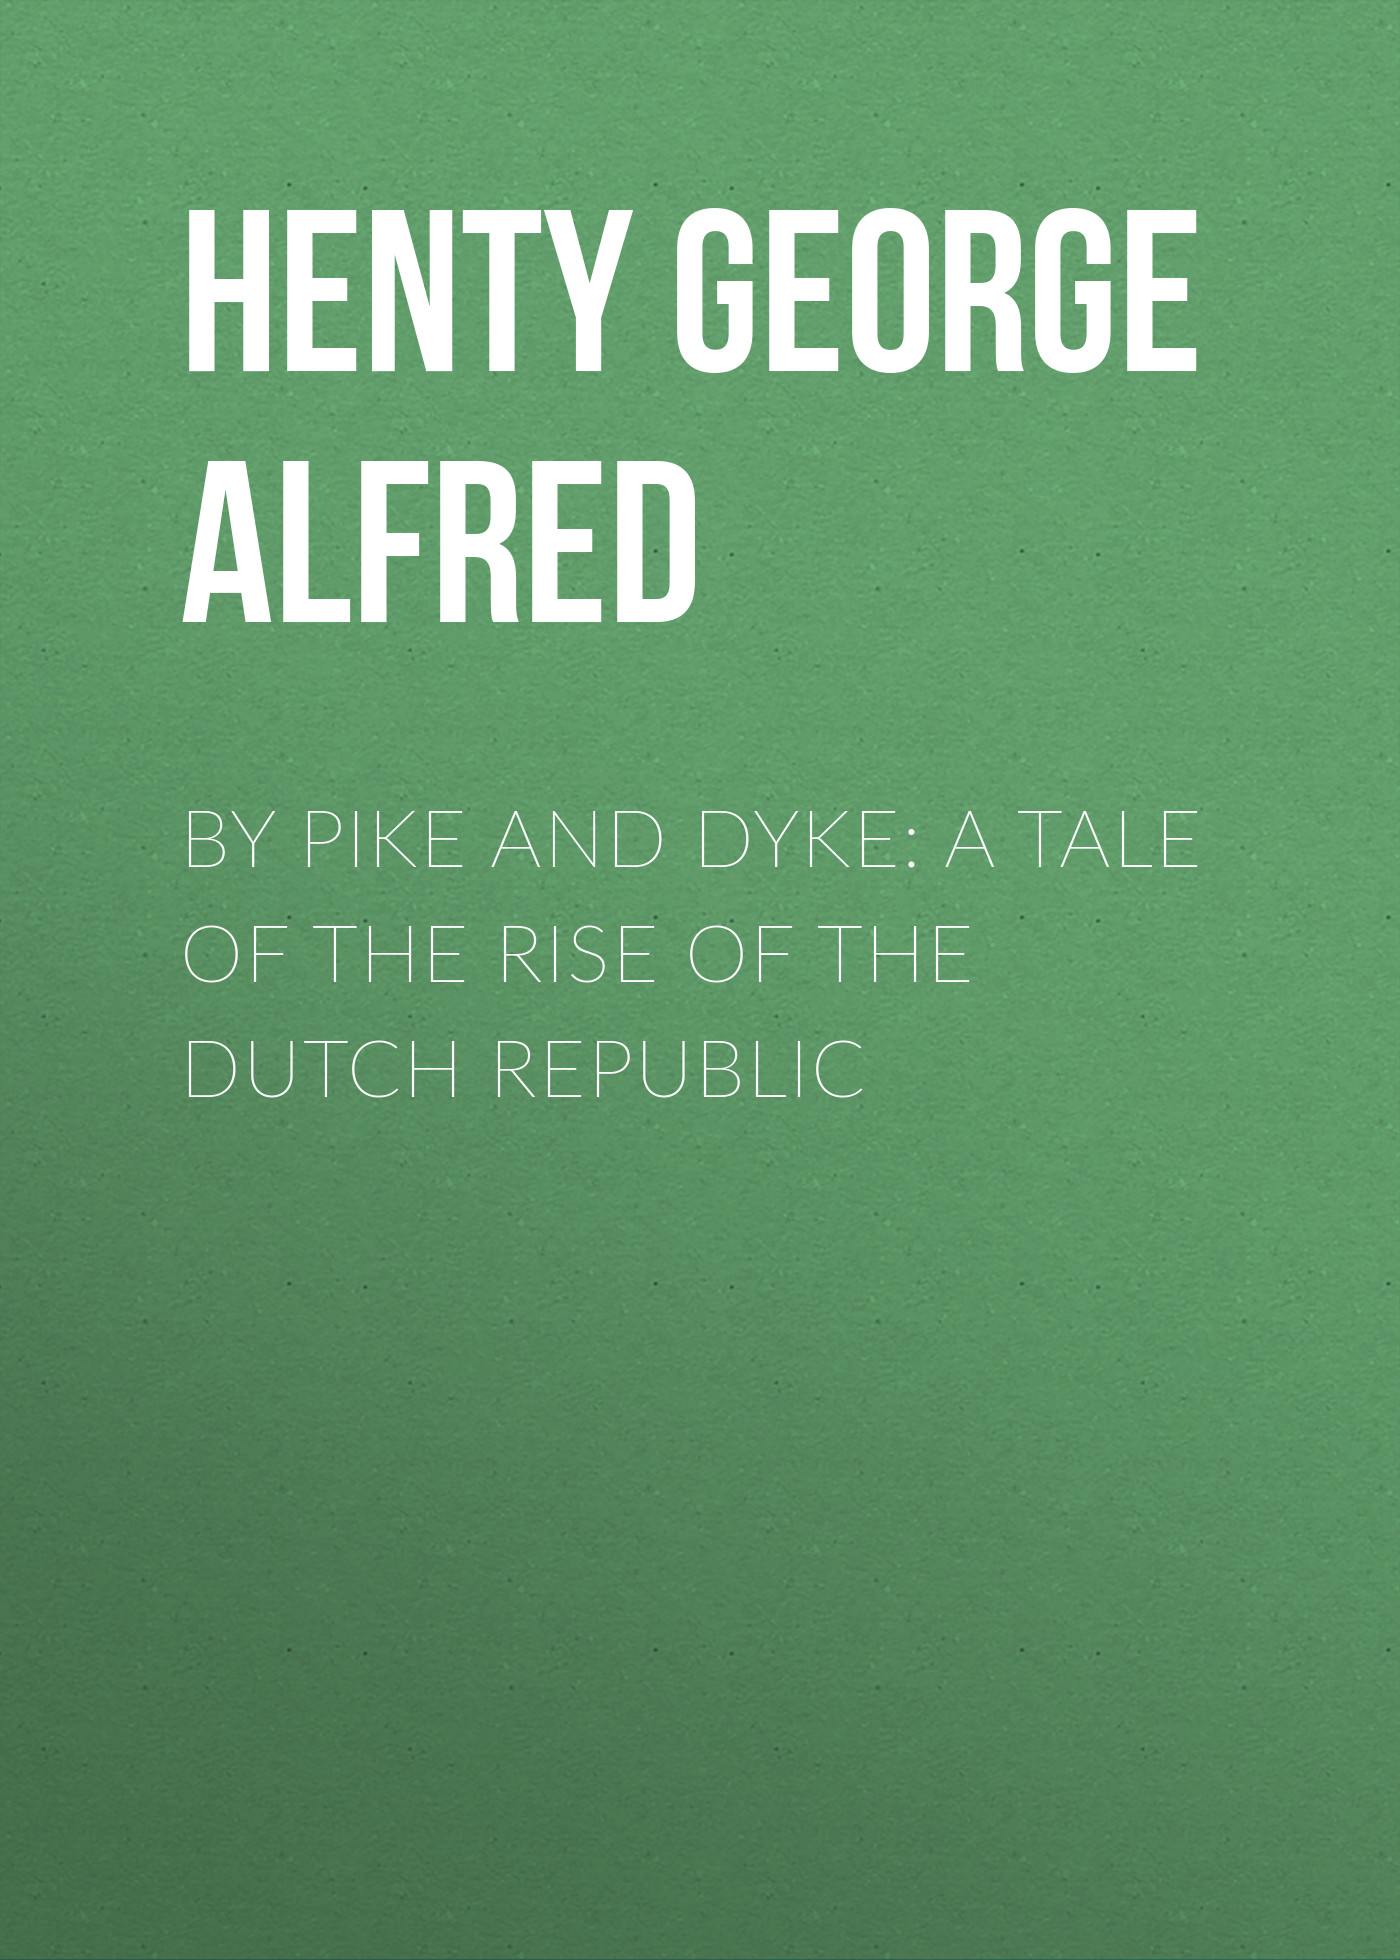 Henty George Alfred By Pike and Dyke: a Tale of the Rise of the Dutch Republic henty george alfred in the reign of terror the adventures of a westminster boy